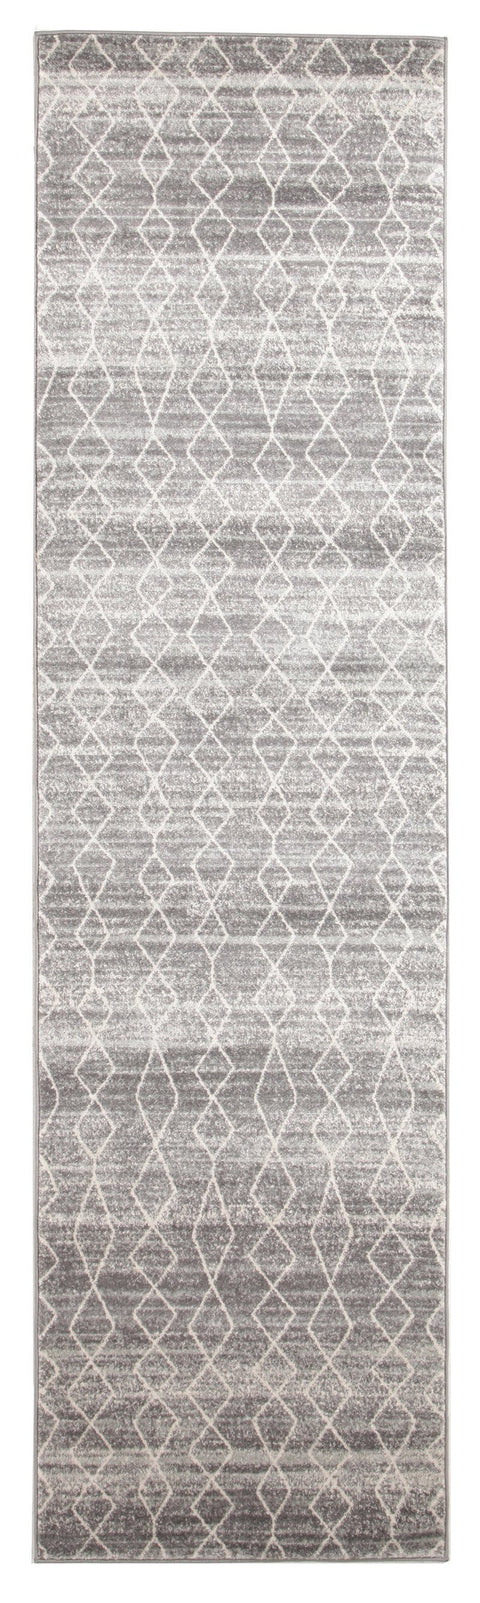 Hobokin Grey Diamond Distressed Runner Rug